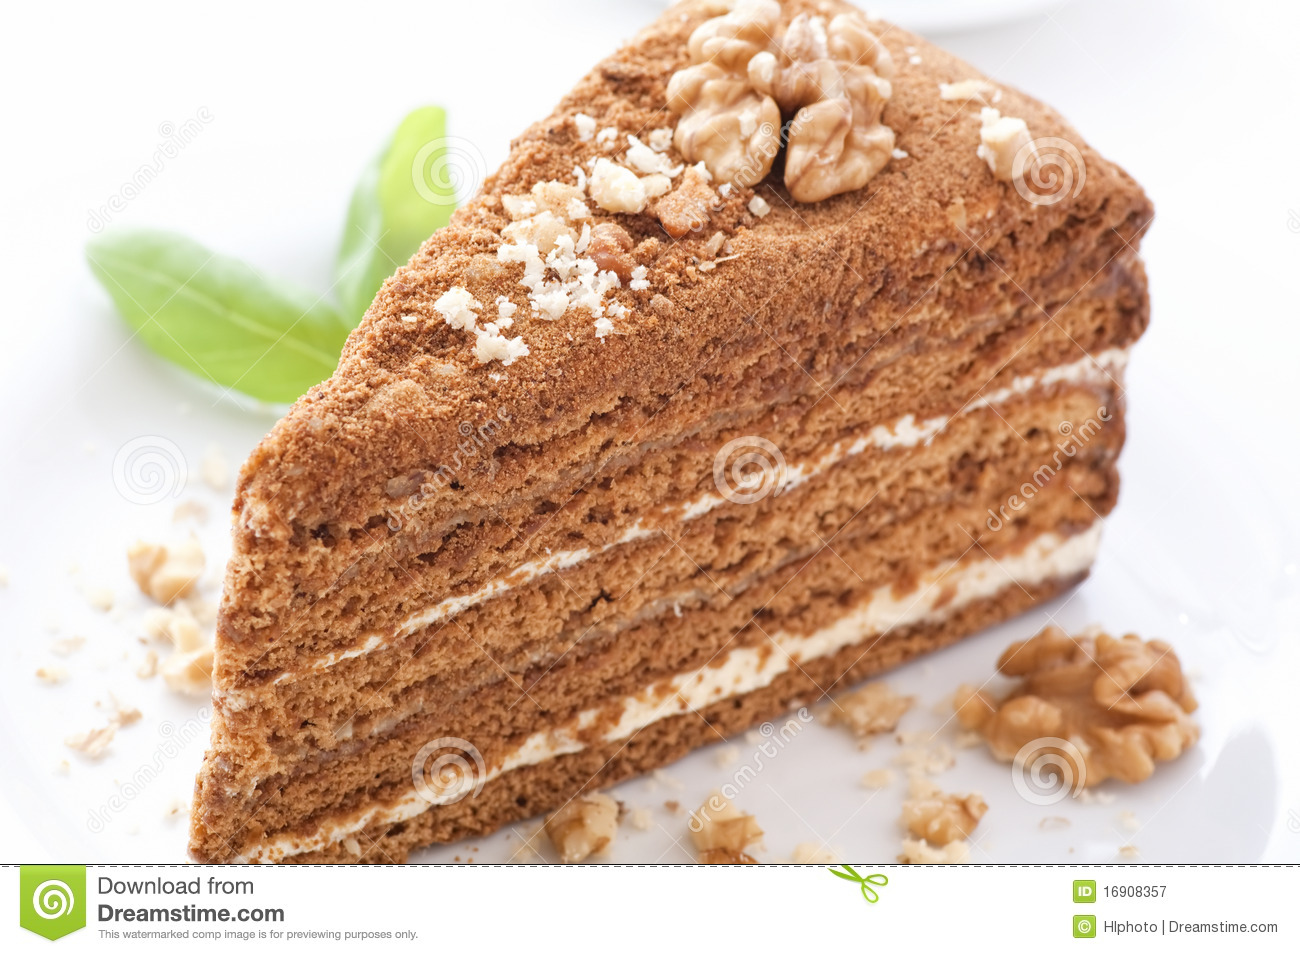 Clipart Of Honey Cake : Honey Cake Royalty Free Stock Photography - Image: 16908357